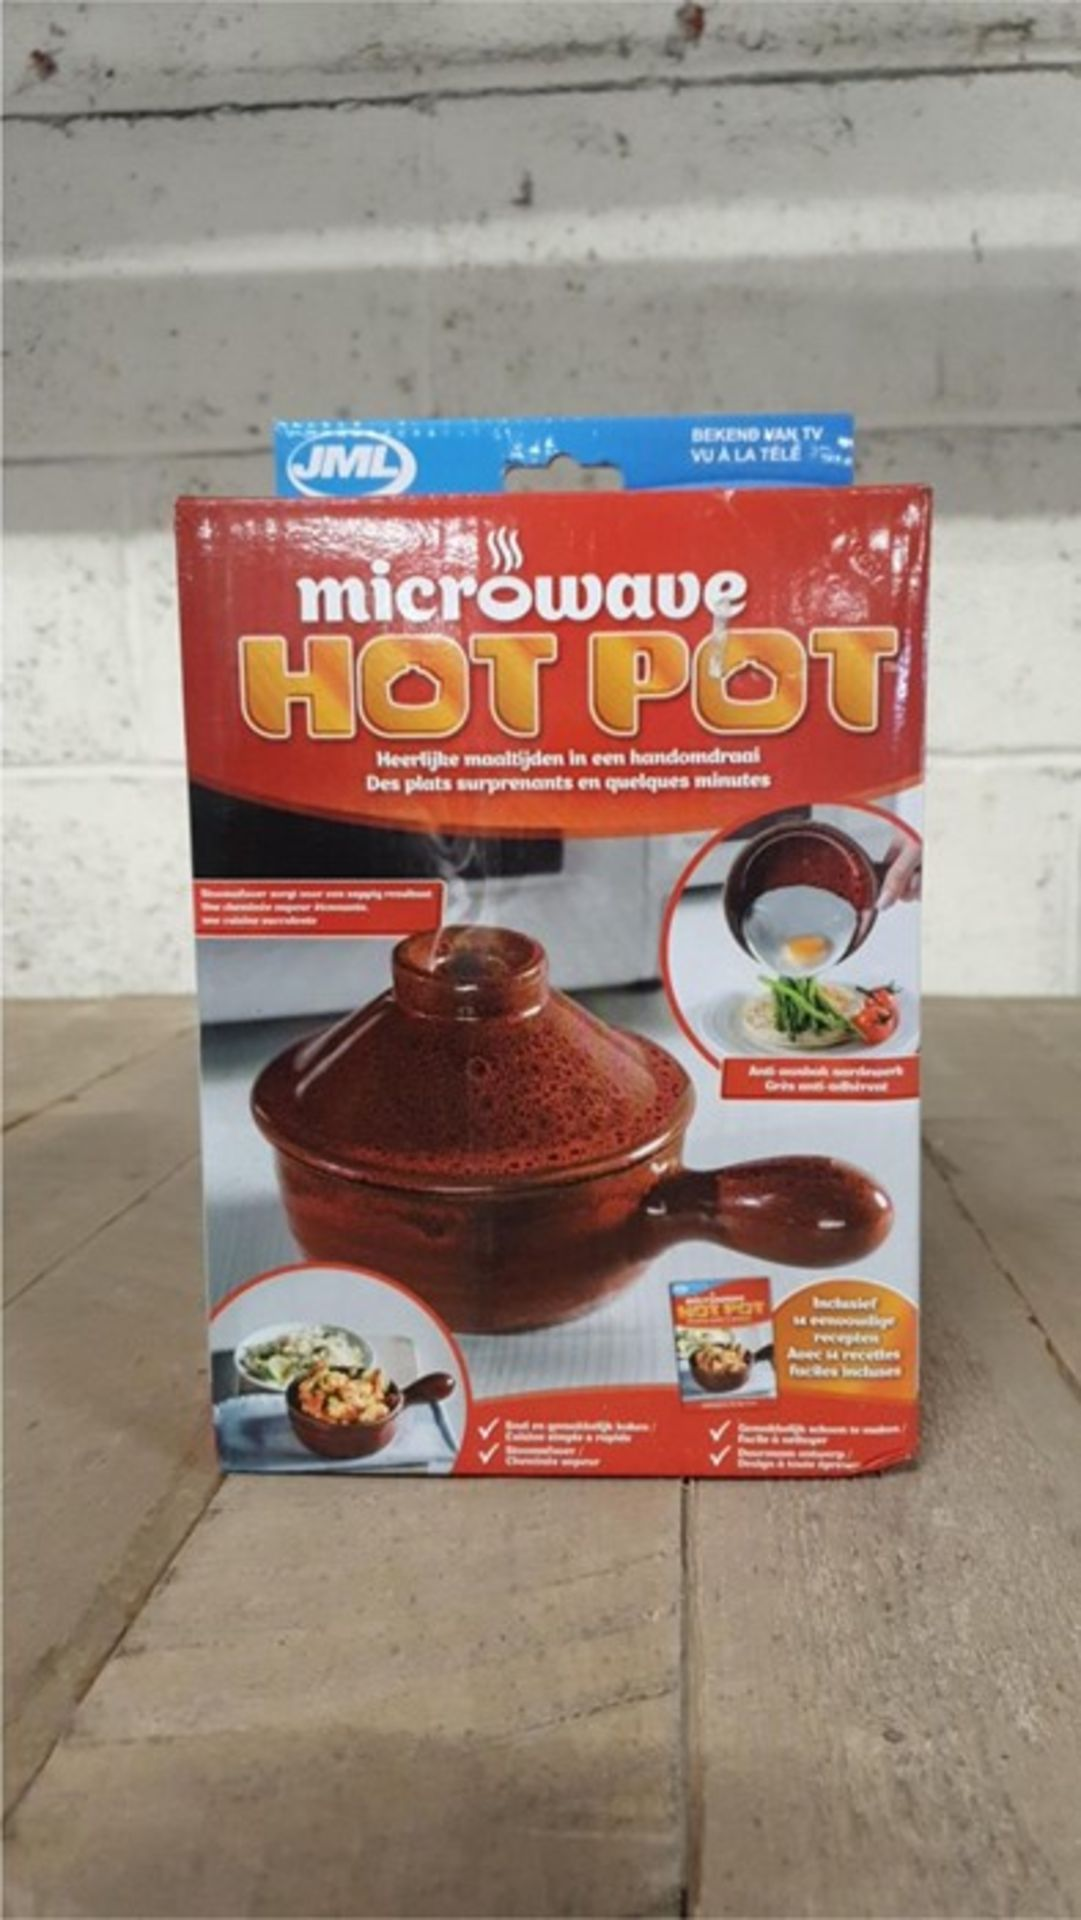 Lot 45 - 1 BOXED JML MICROWAVE HOTPOT CERAMIC POT (VIEWING HIGHLY RECOMMENDED)